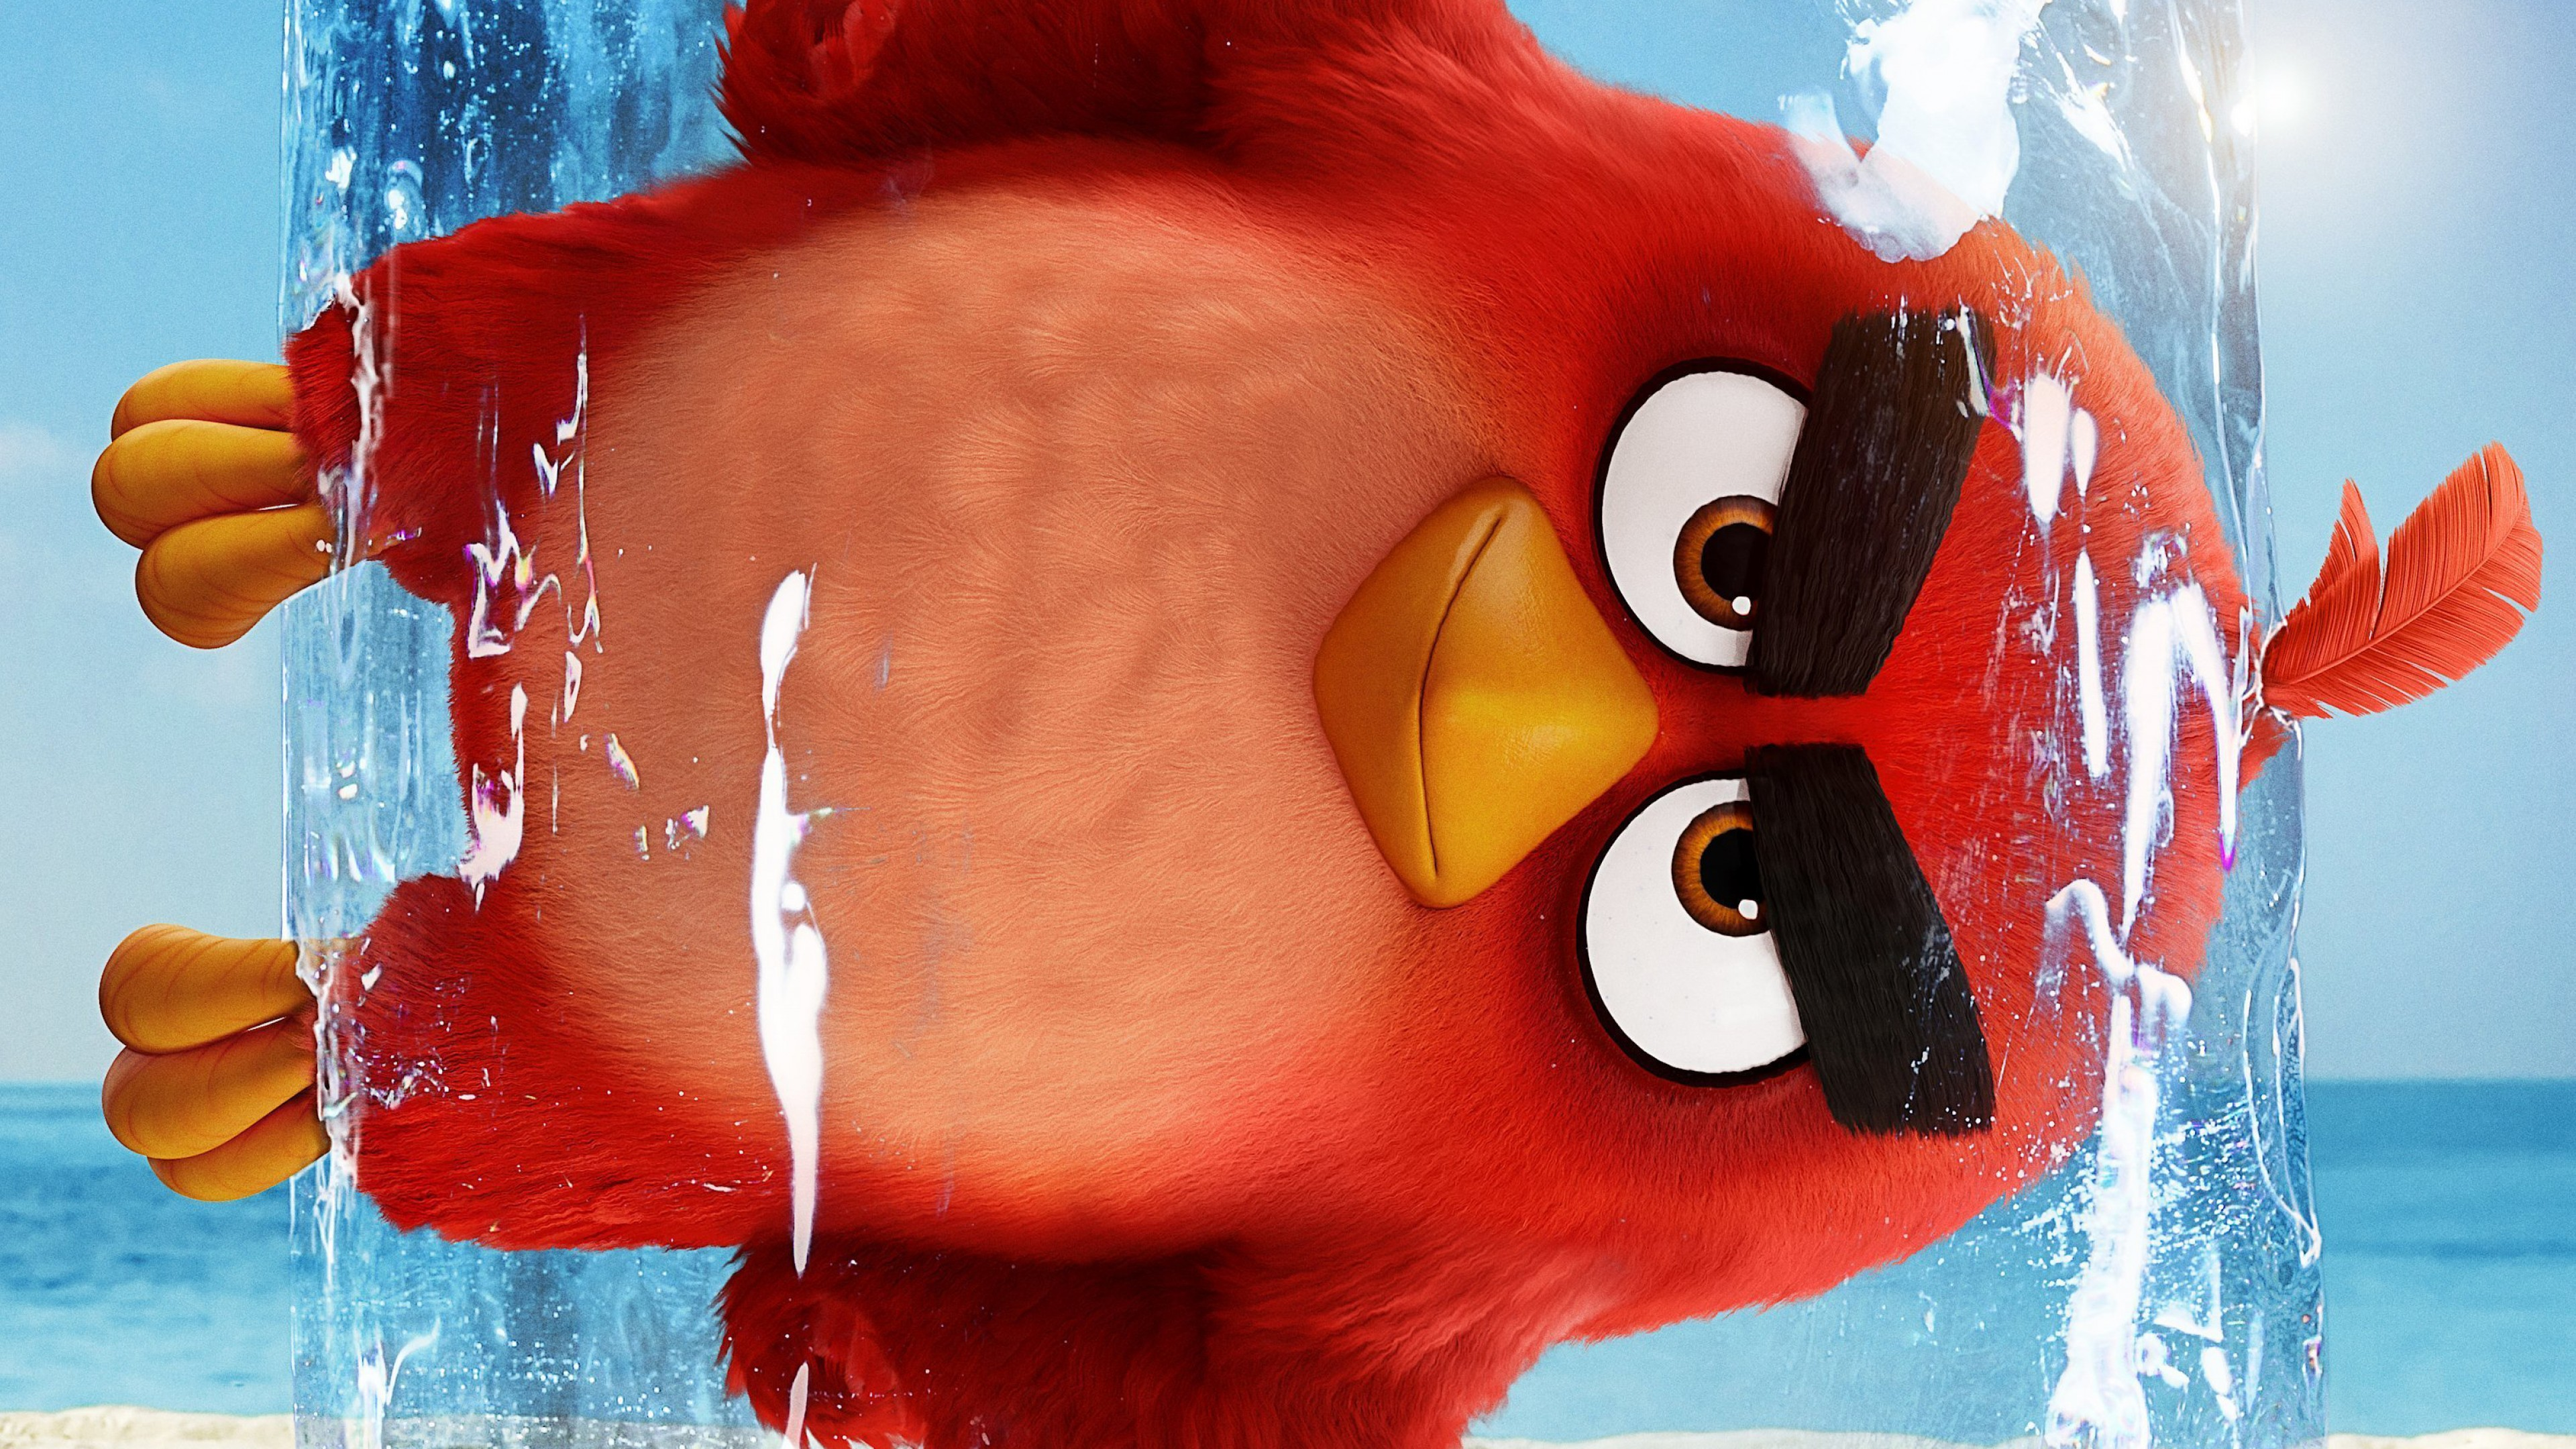 The Angry Birds Movie 2 Wallpaper 4k Ultra HD ID:3285